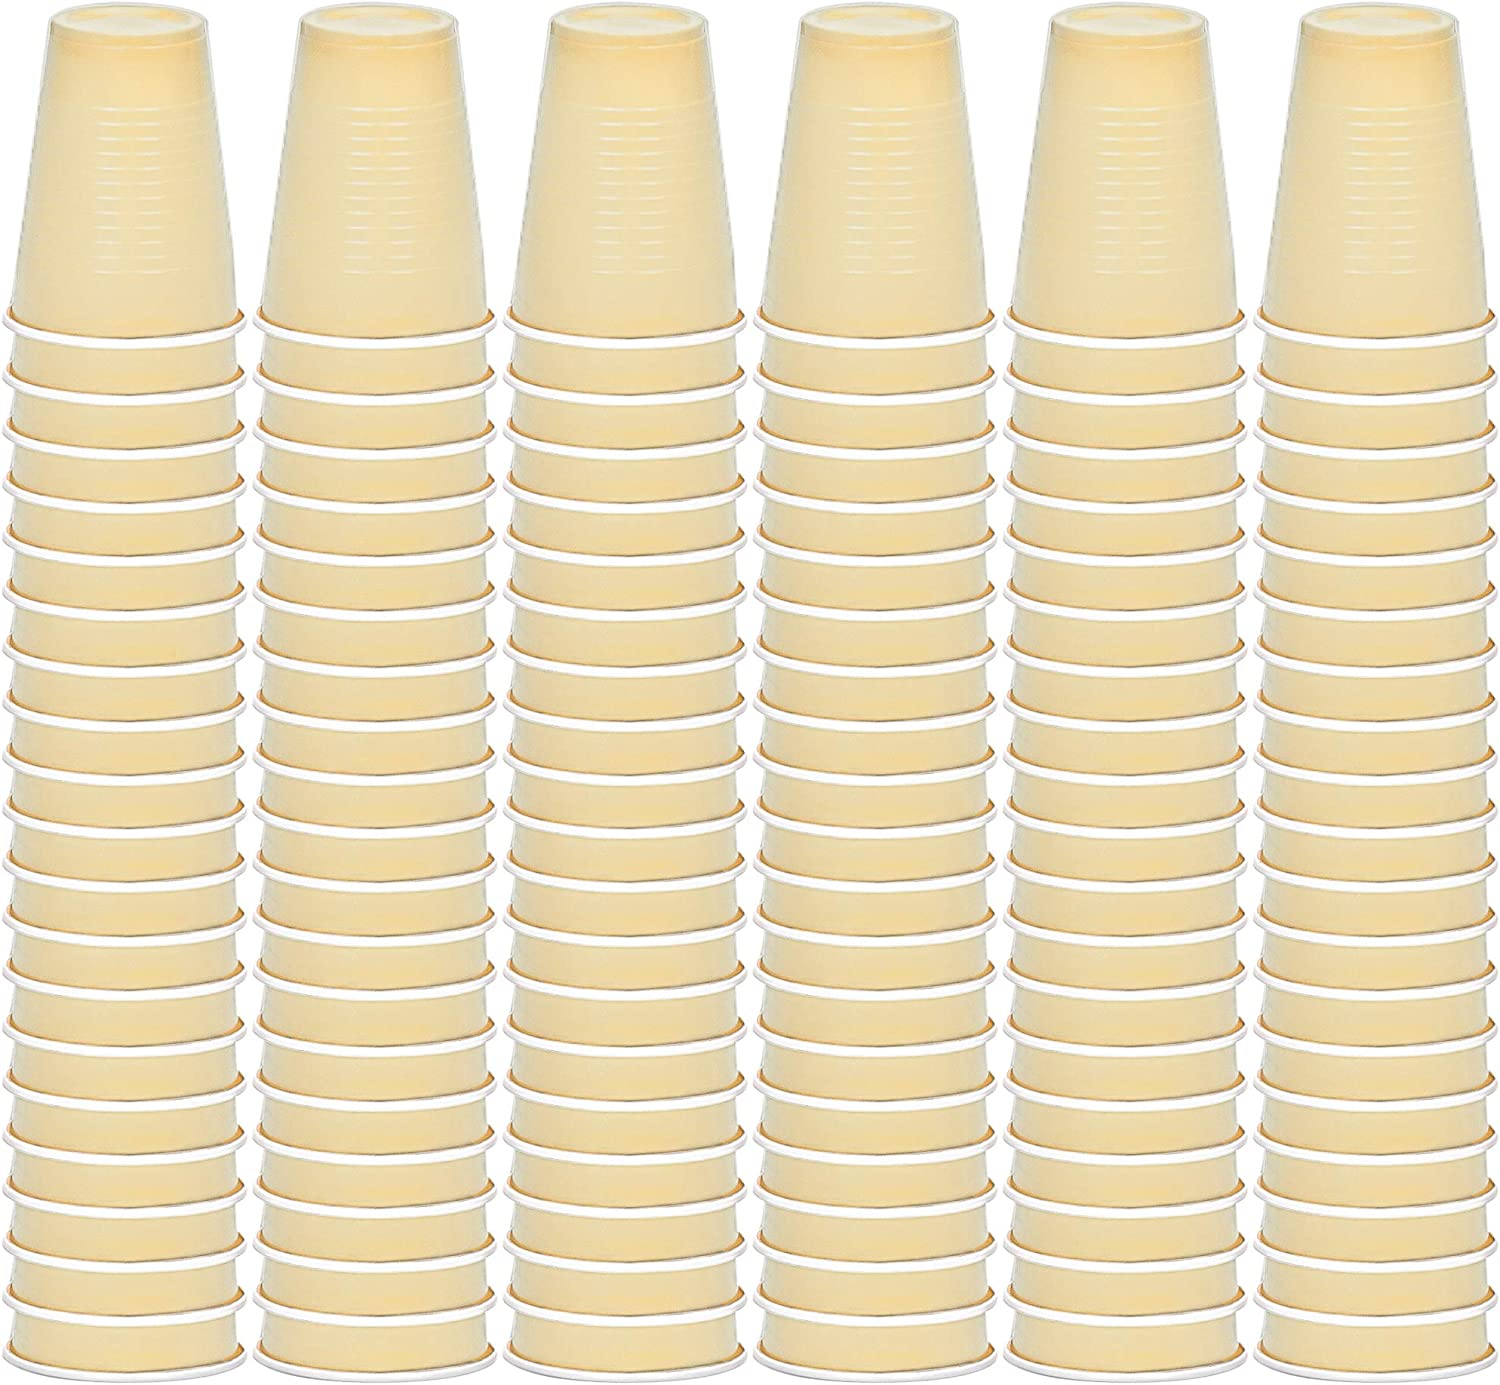 DecorRack Party Cups 12 oz Reusable Disposable Cups for Birthday Party Bachelorette Camping Indoor Outdoor Events Beverage Drinking Cups Ivory (120 Pack)